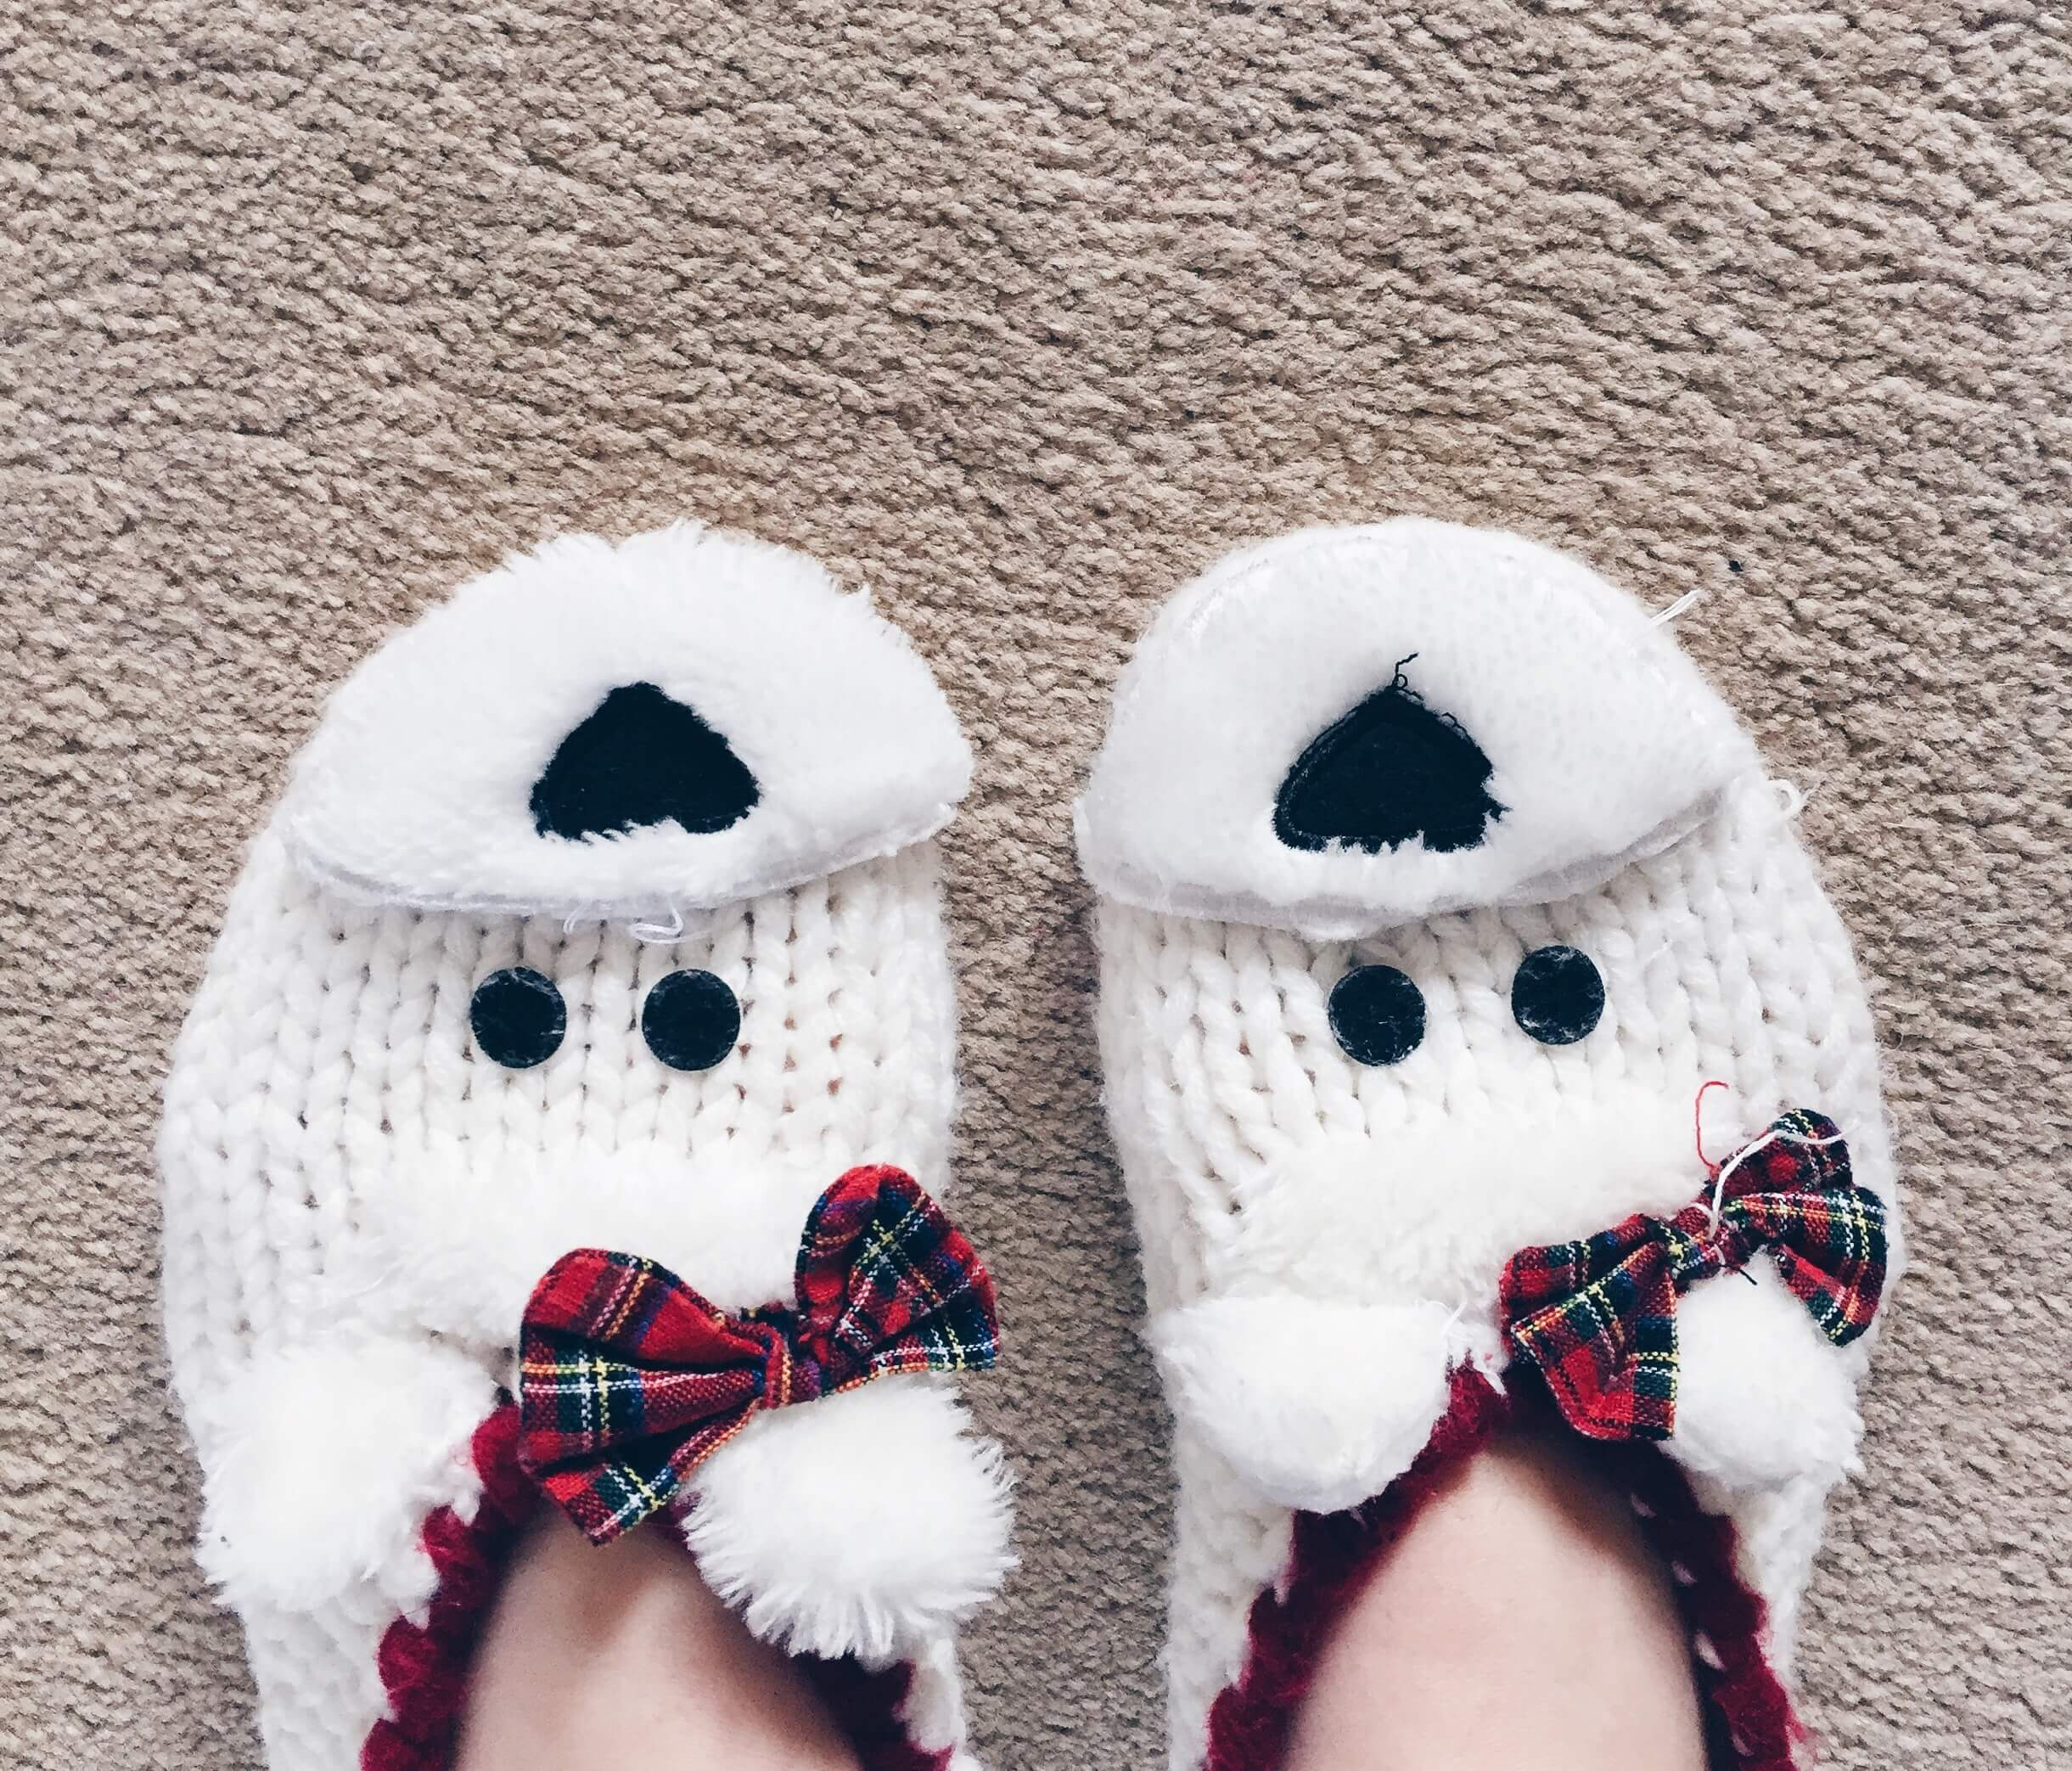 It's hit November and FREEZING at the same time - but that means getting comfy in my cute slippers so I don't mind.